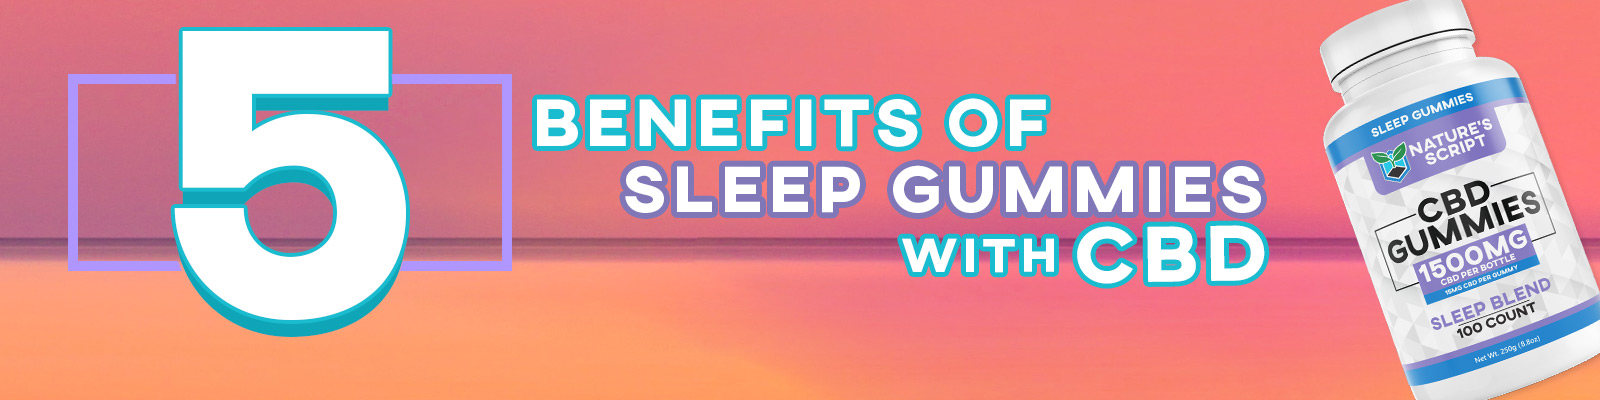 5 Benefits of Sleep Gummies with CBD Banner